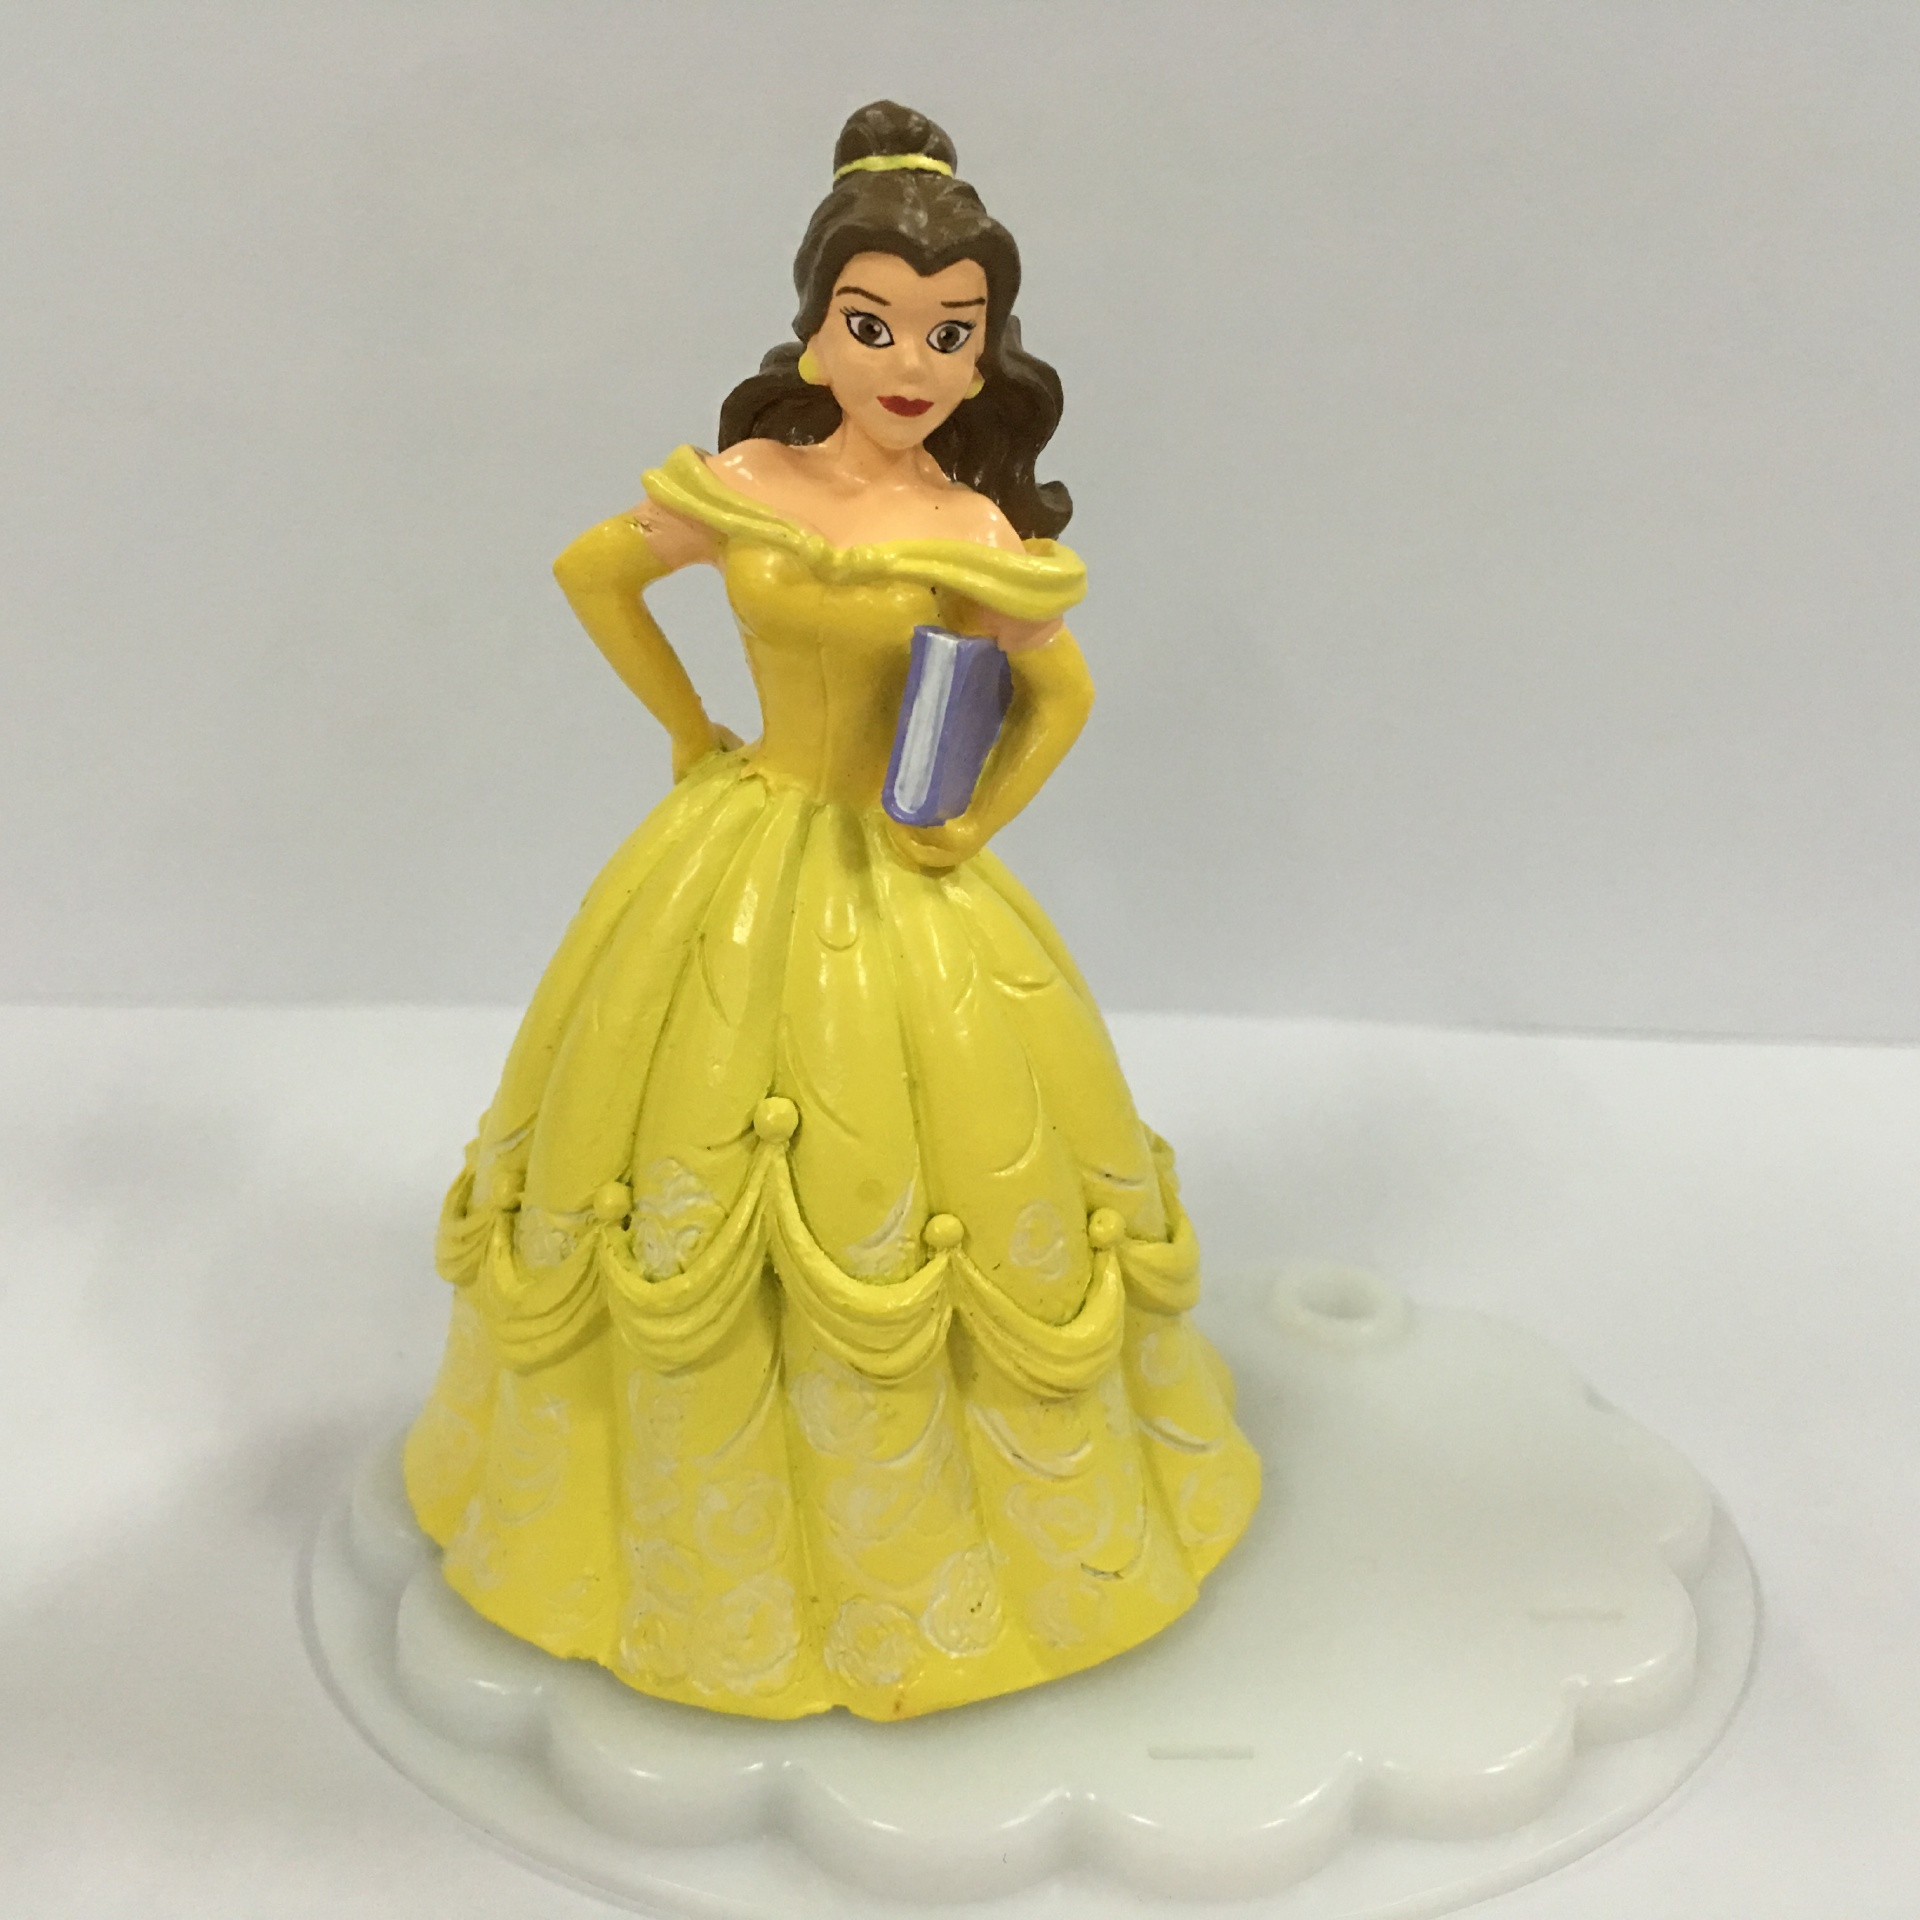 Belle Princess Toy Figure